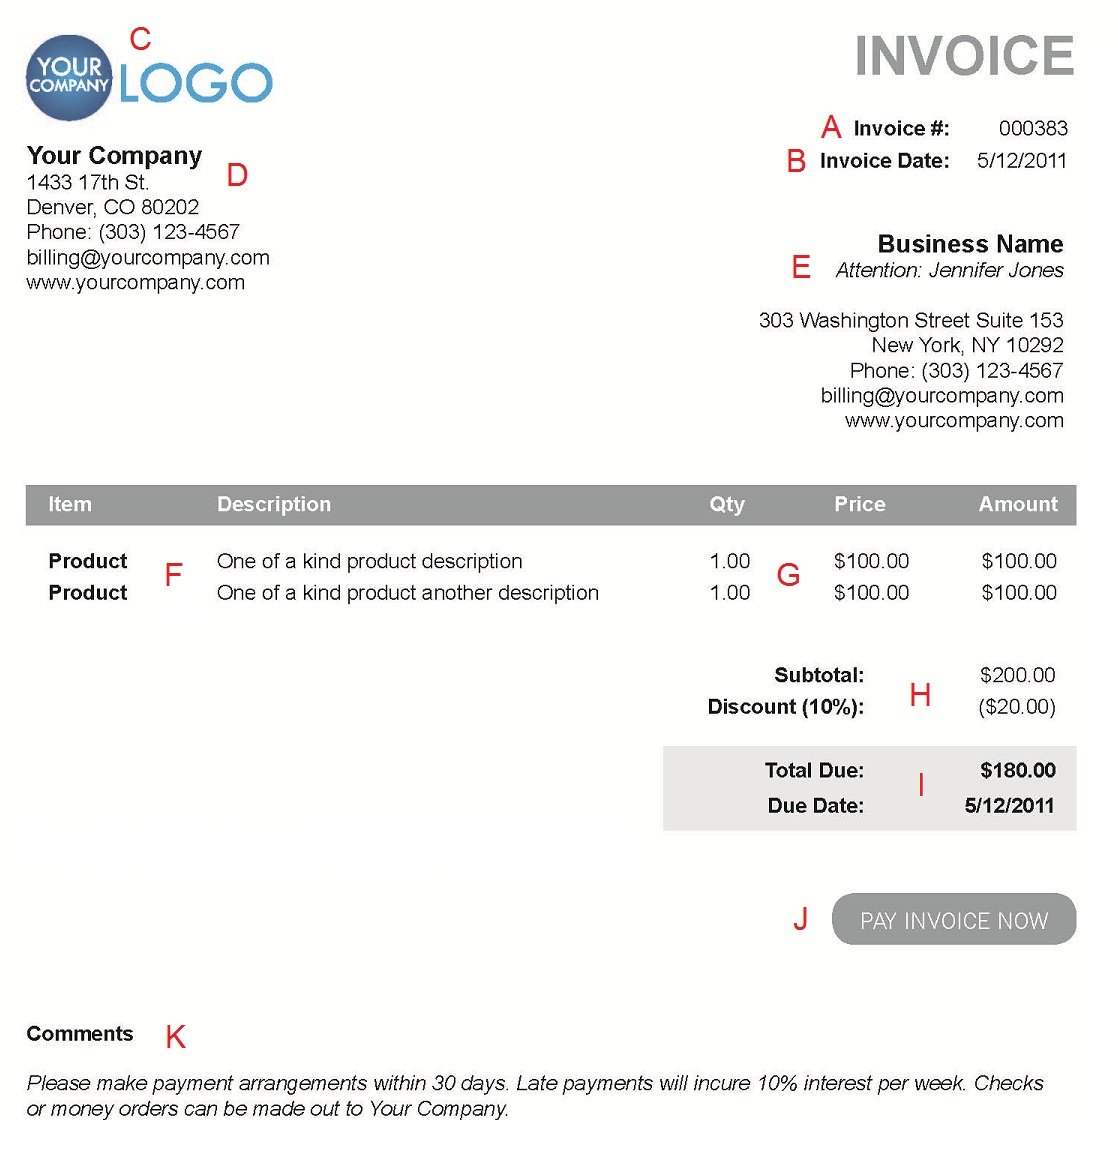 Musclebuildingtipsus  Ravishing The  Different Sections Of An Electronic Payment Invoice With Gorgeous A  With Delightful Invoice Price Of Car Also Free Invoice Template Microsoft Word In Addition Invoice Approval Workflow And Express Invoice Login As Well As Define Invoicing Additionally Free Invoice Maker Online From Paysimplecom With Musclebuildingtipsus  Gorgeous The  Different Sections Of An Electronic Payment Invoice With Delightful A  And Ravishing Invoice Price Of Car Also Free Invoice Template Microsoft Word In Addition Invoice Approval Workflow From Paysimplecom